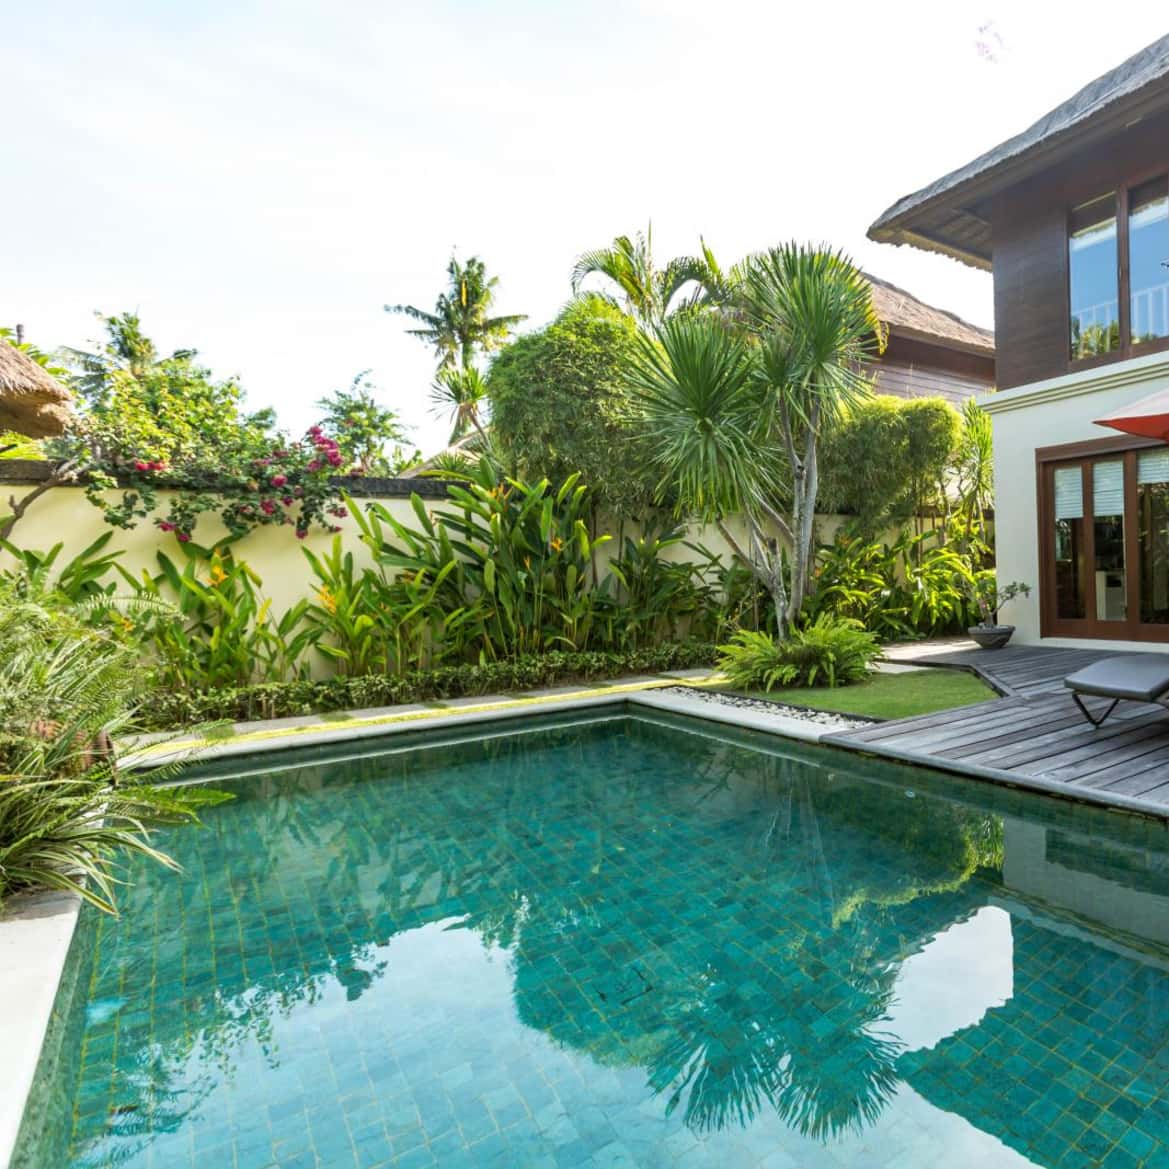 Honeymoon Pool Villa - The Pavilions Bali